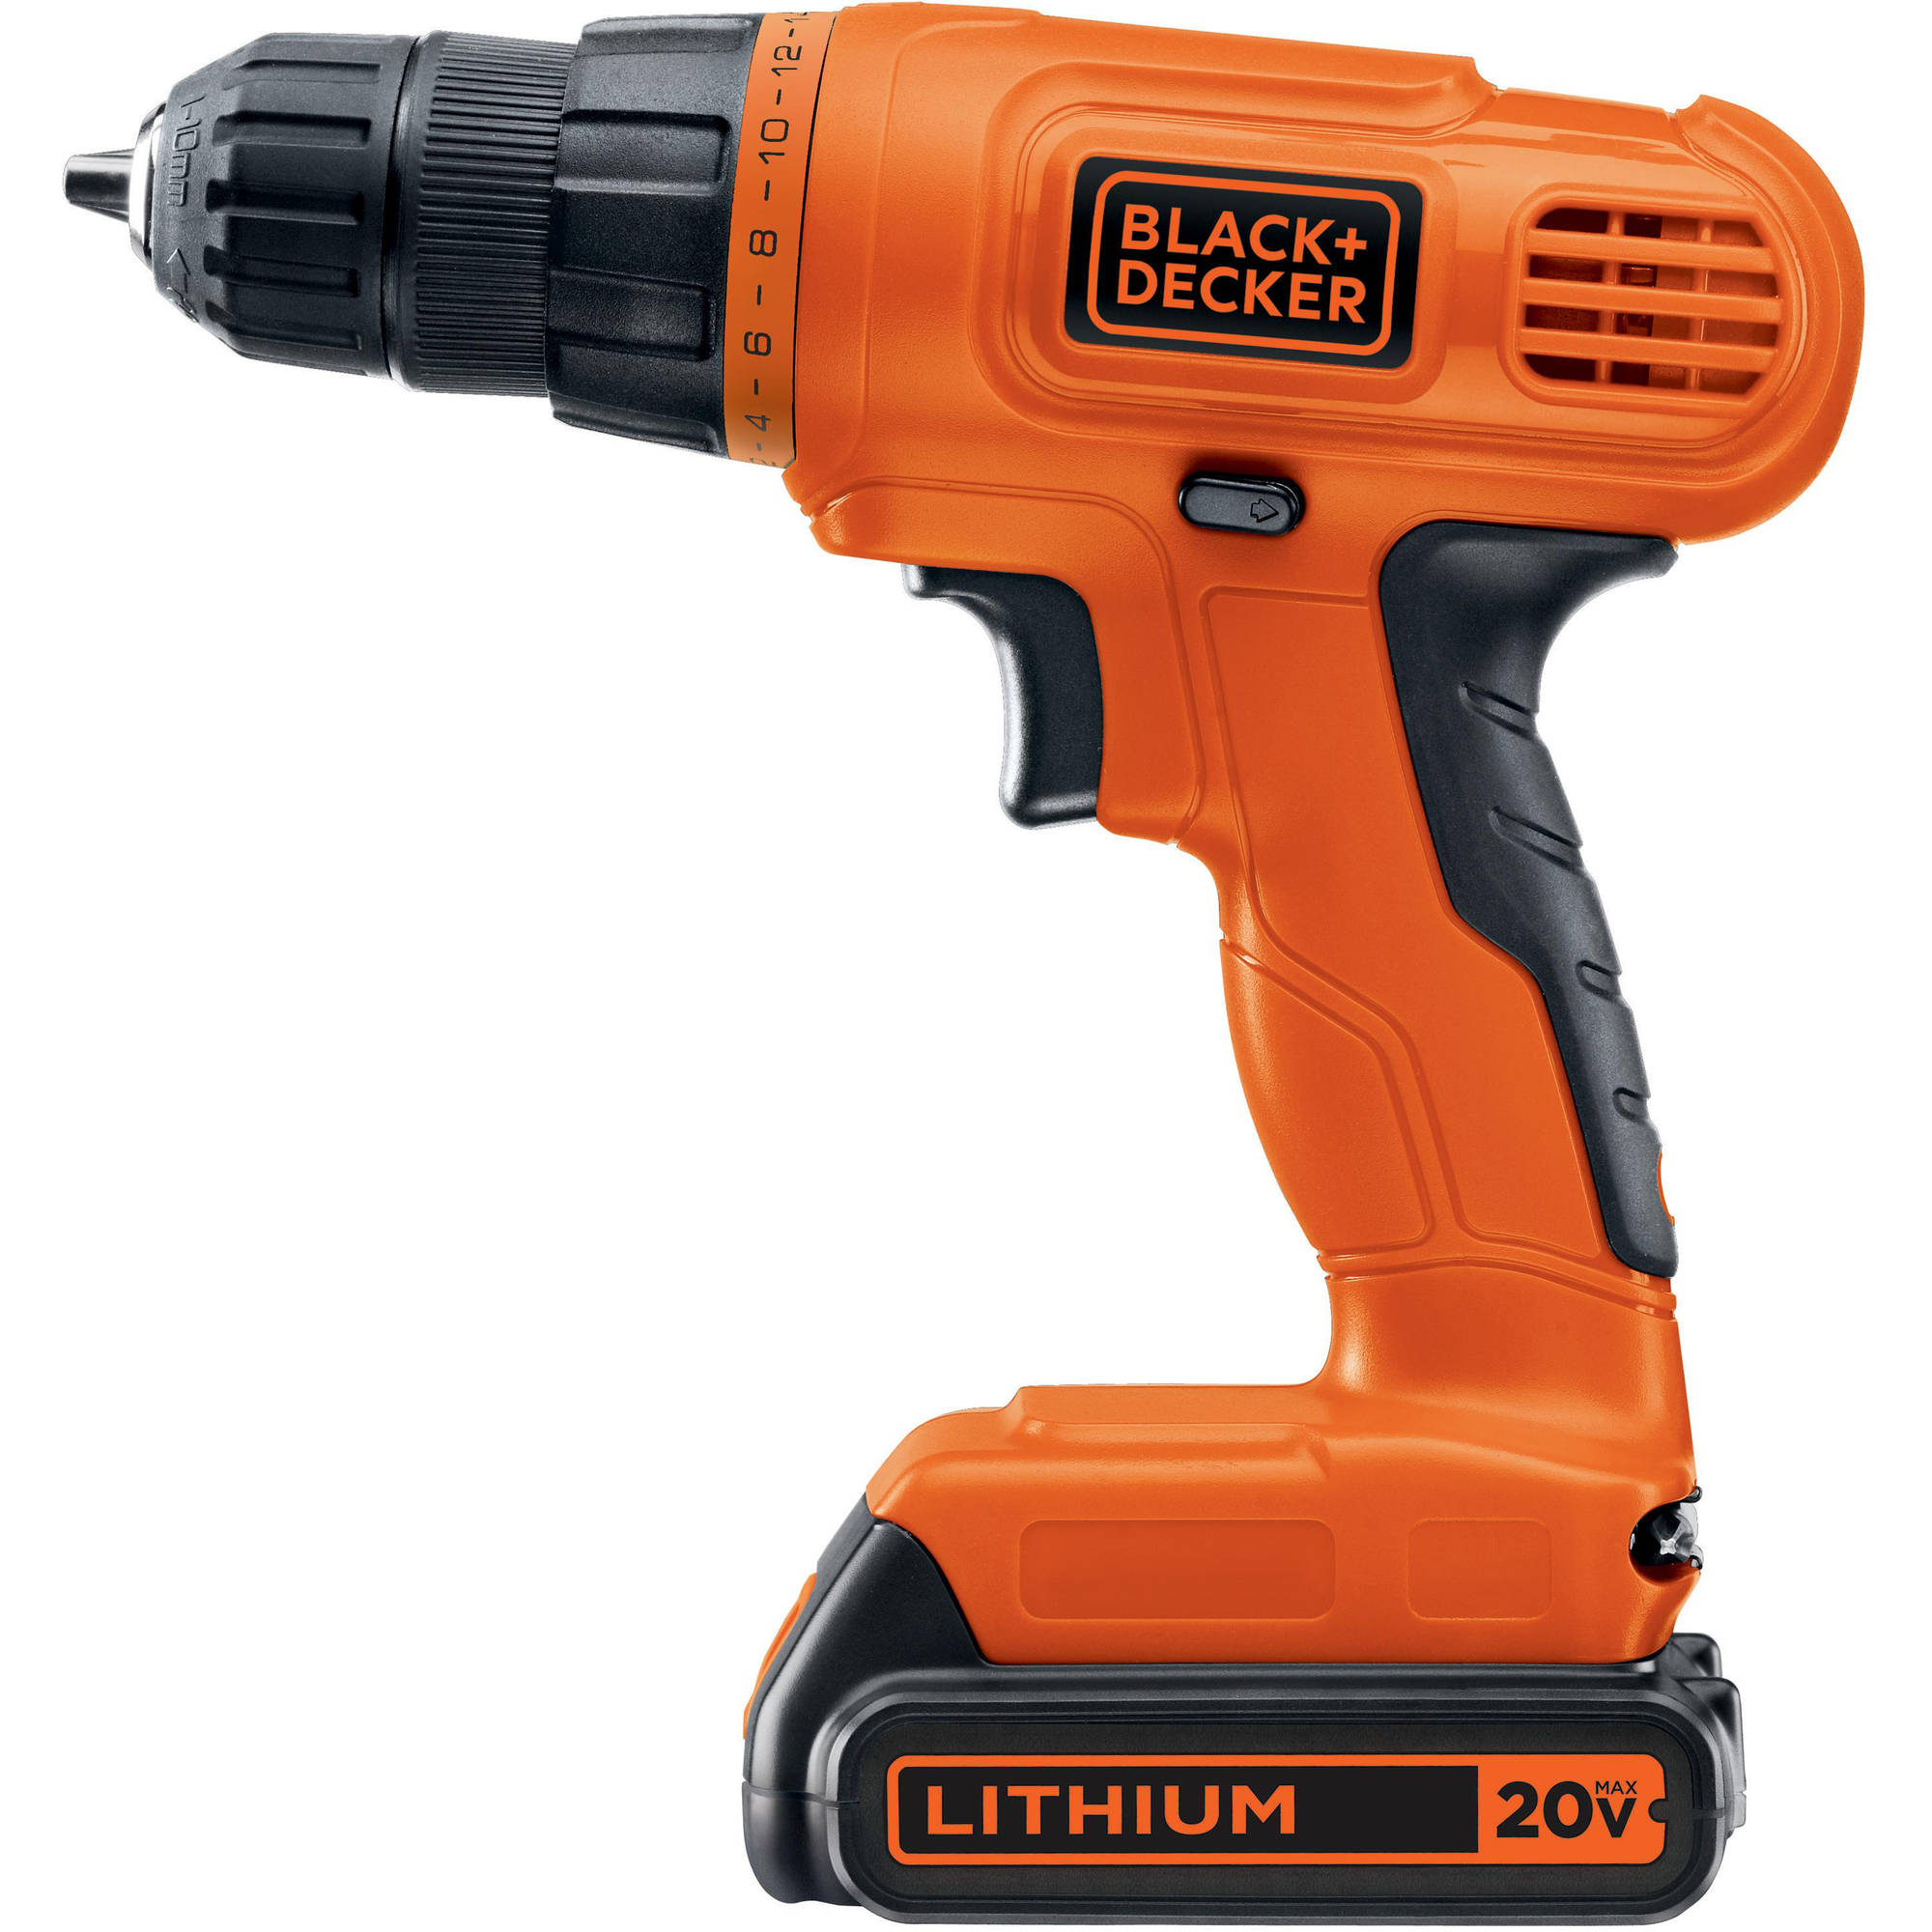 Black and Decker 20V Lithium Drill/Driver with 128-Piece ...